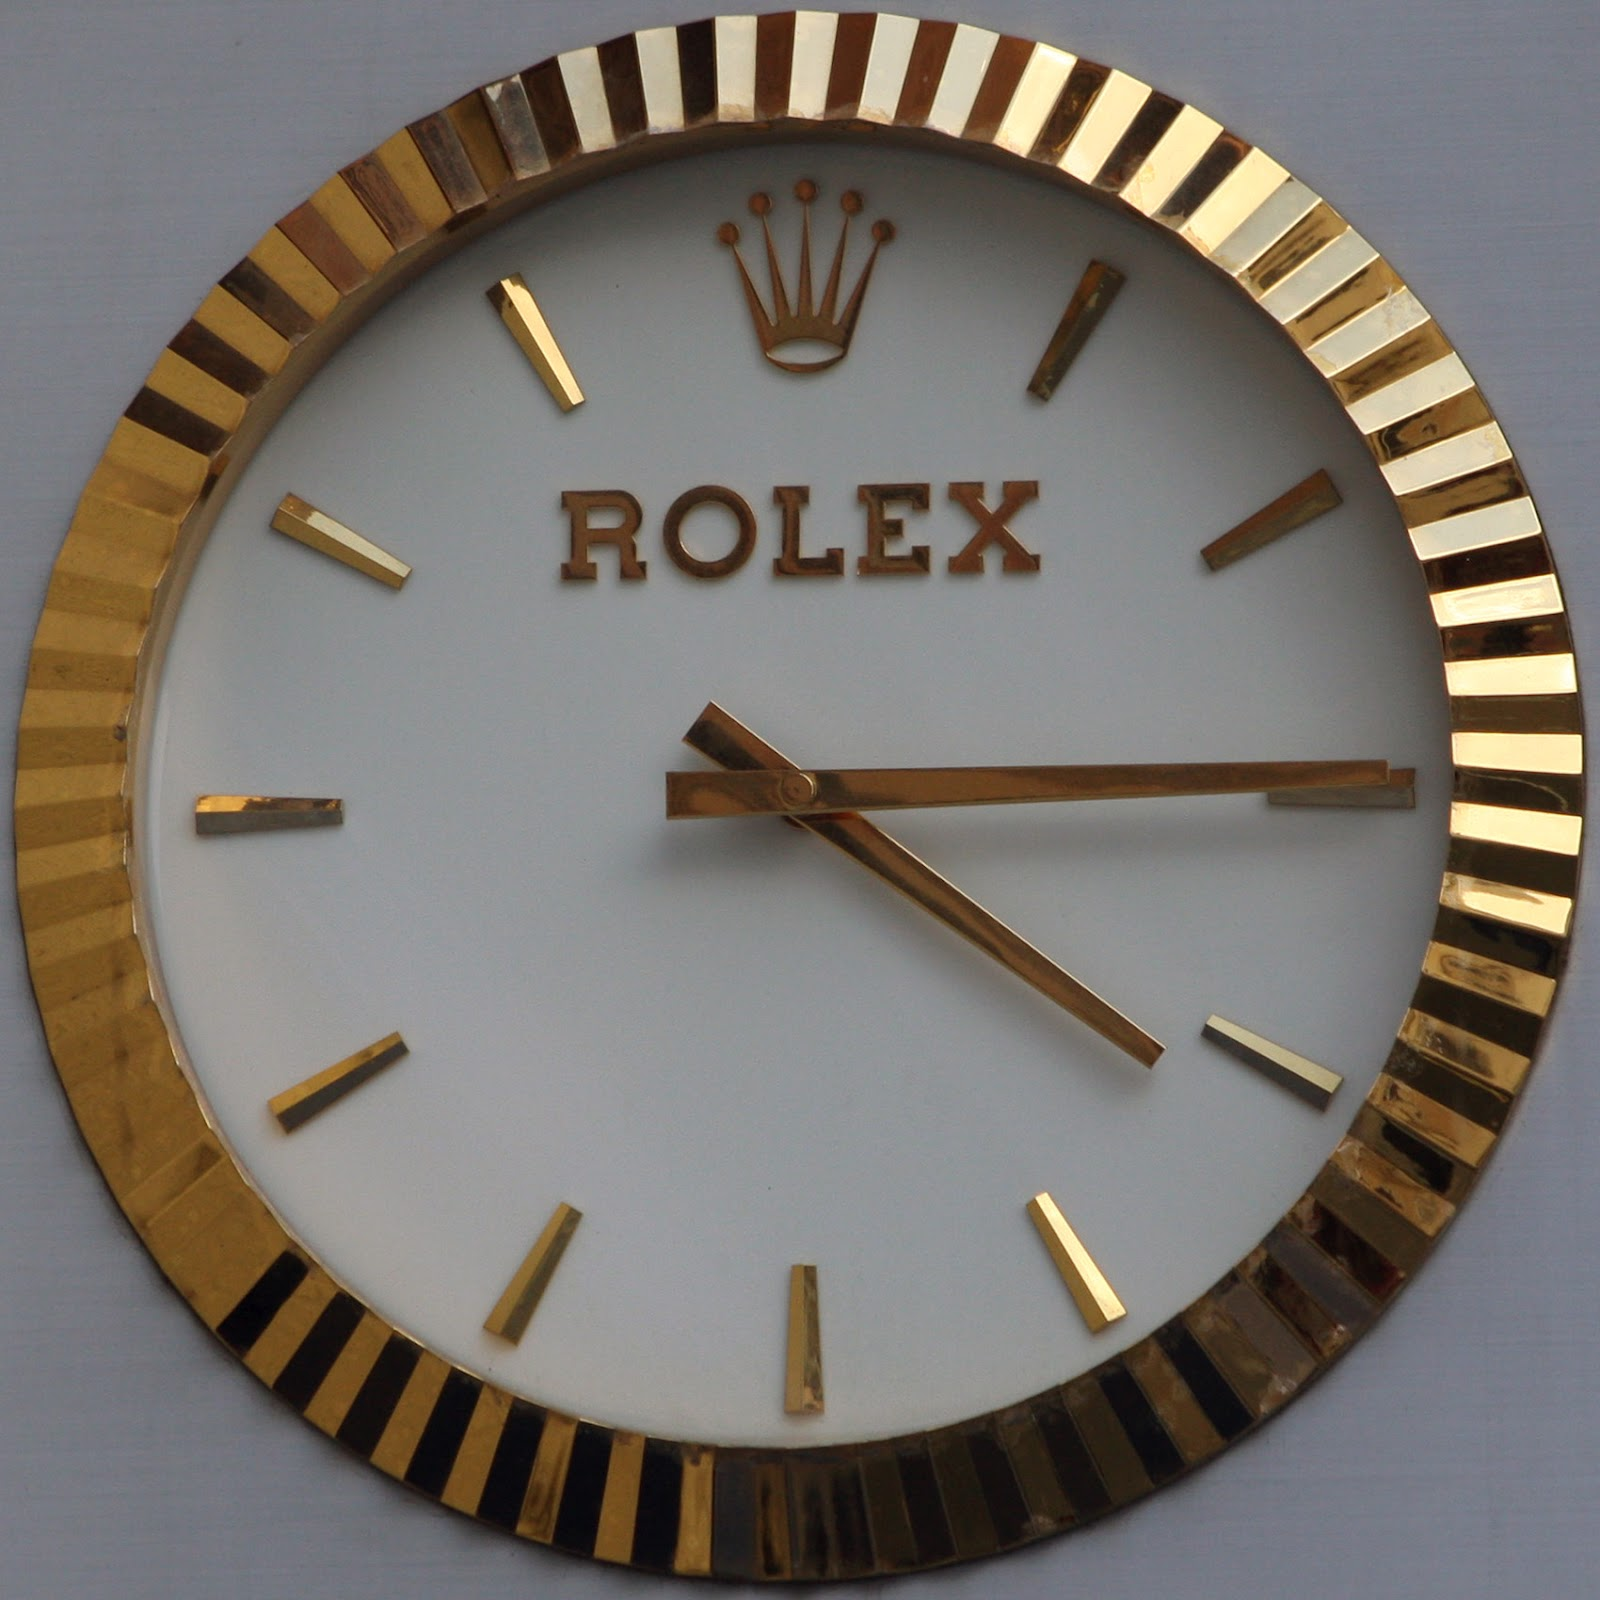 Fake rolex wallclocks and the authentic rolex wallclock watches let me start with one of the very few real and authentic rolex wallclocks amipublicfo Image collections